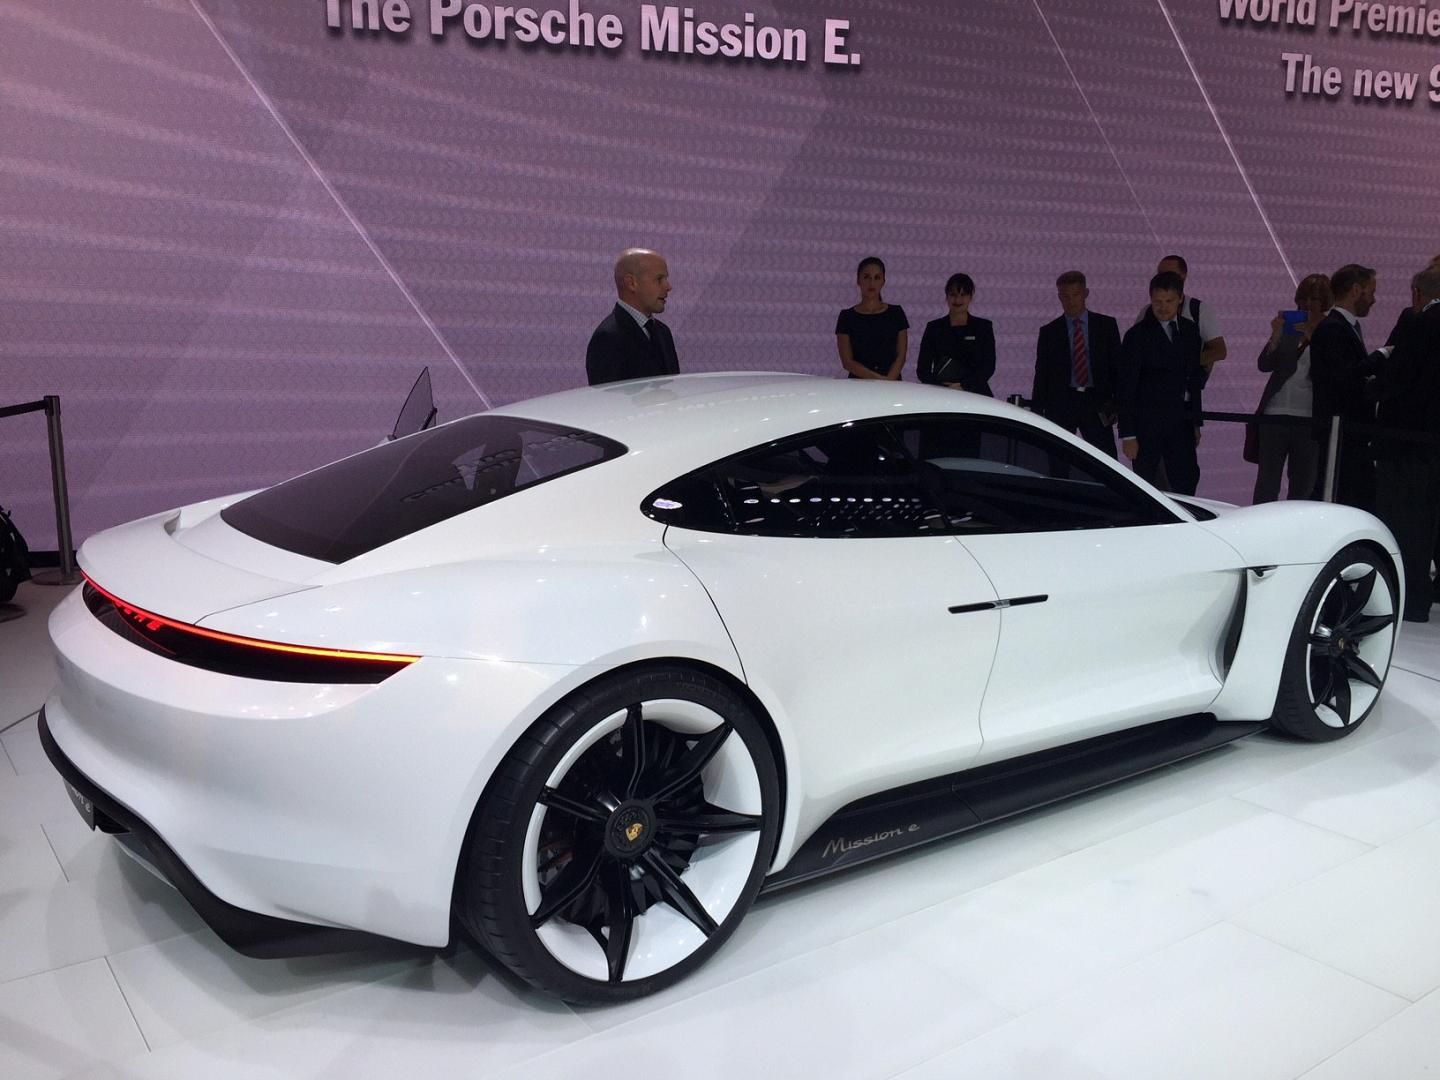 IAA 2015 - Porsche Mission E Concept Car 2